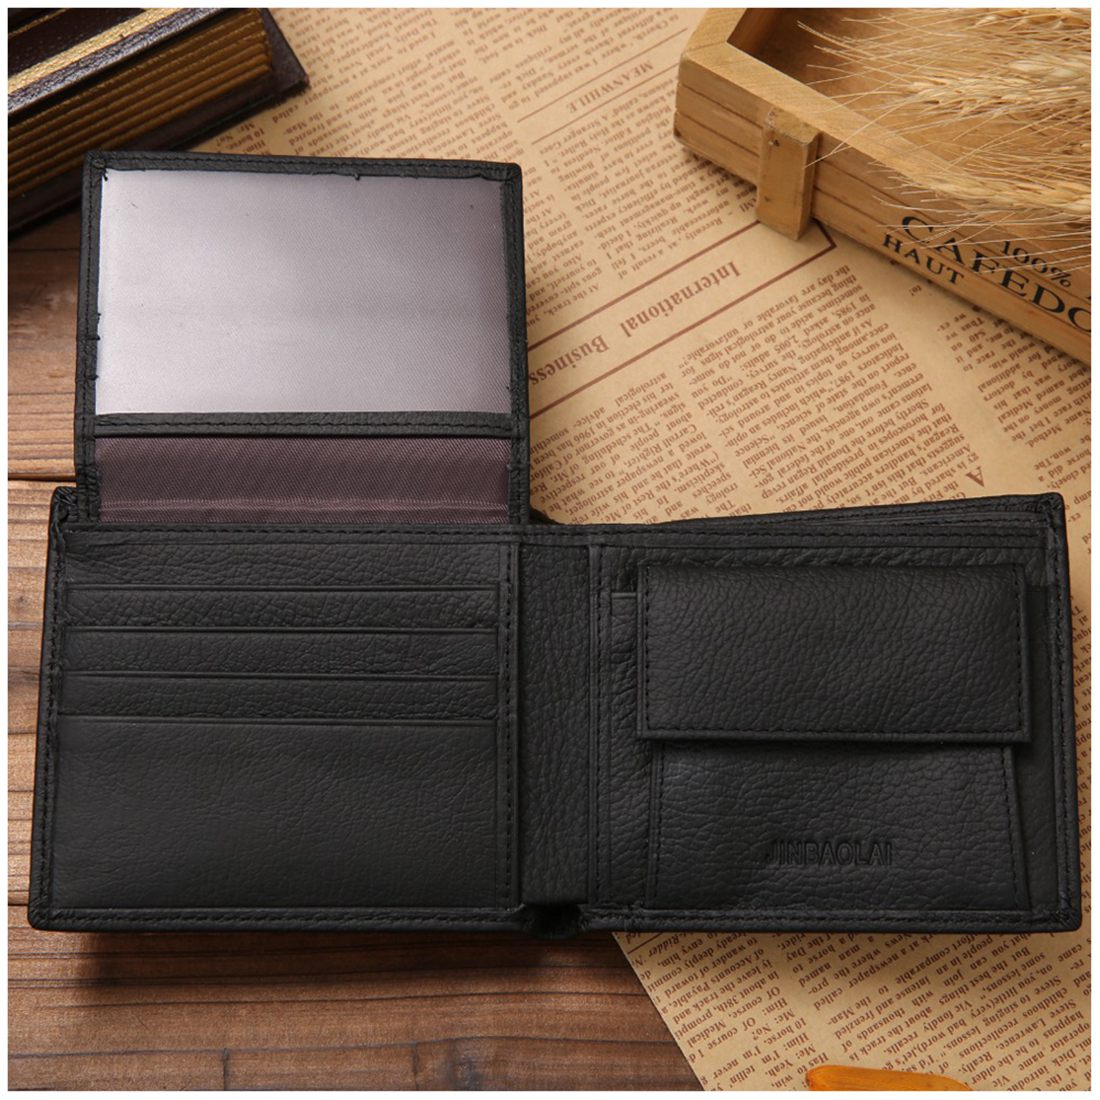 Hot Fashion JINBAOLAI Small Short Leather Mens Wallet Male Wallet Bag Wallet Vallet Card ...